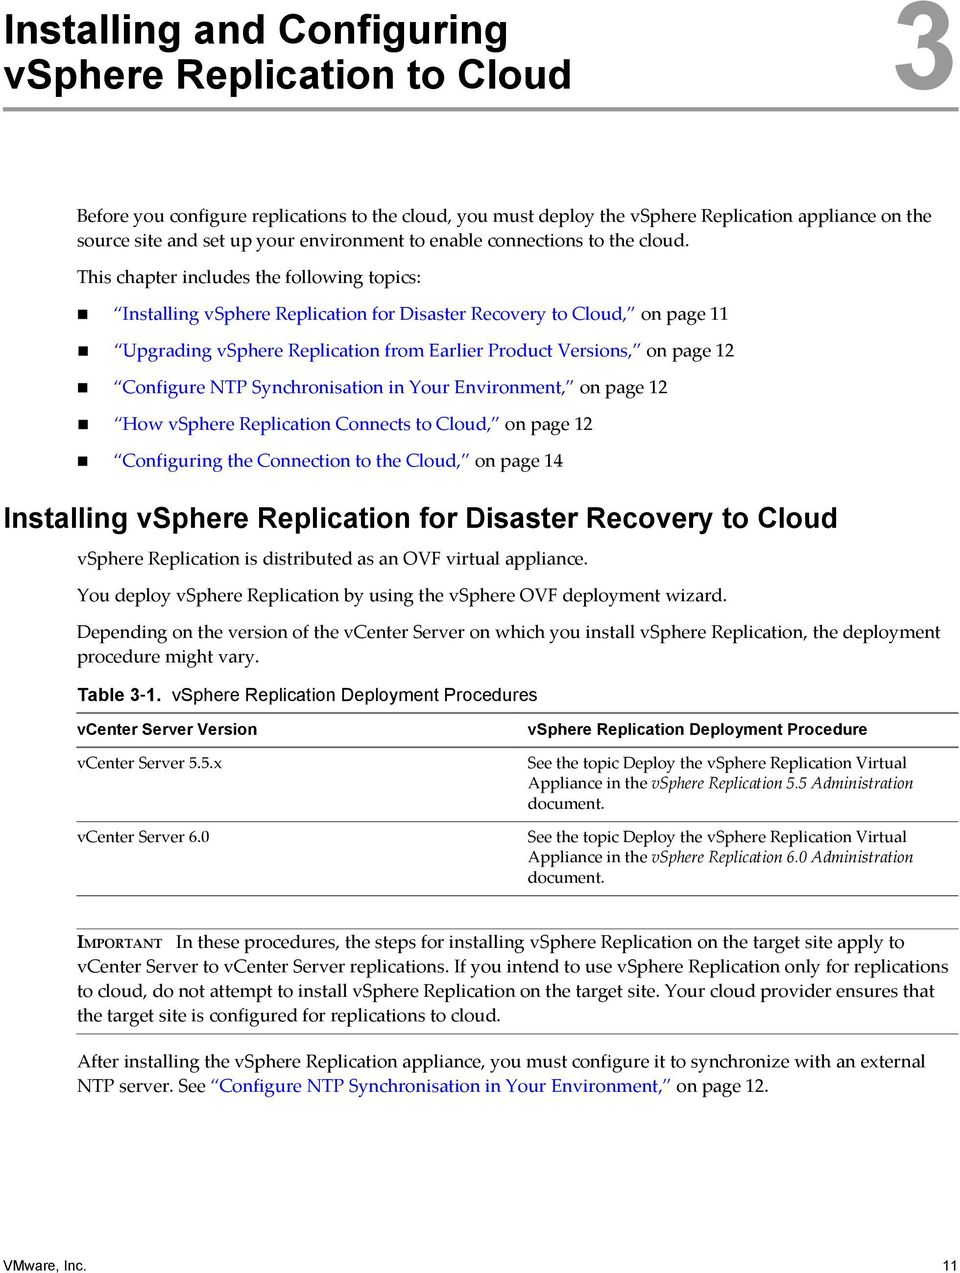 This chapter includes the following topics: Installing vsphere Replication for Disaster Recovery to Cloud, on page 11 Upgrading vsphere Replication from Earlier Product Versions, on page 12 Configure